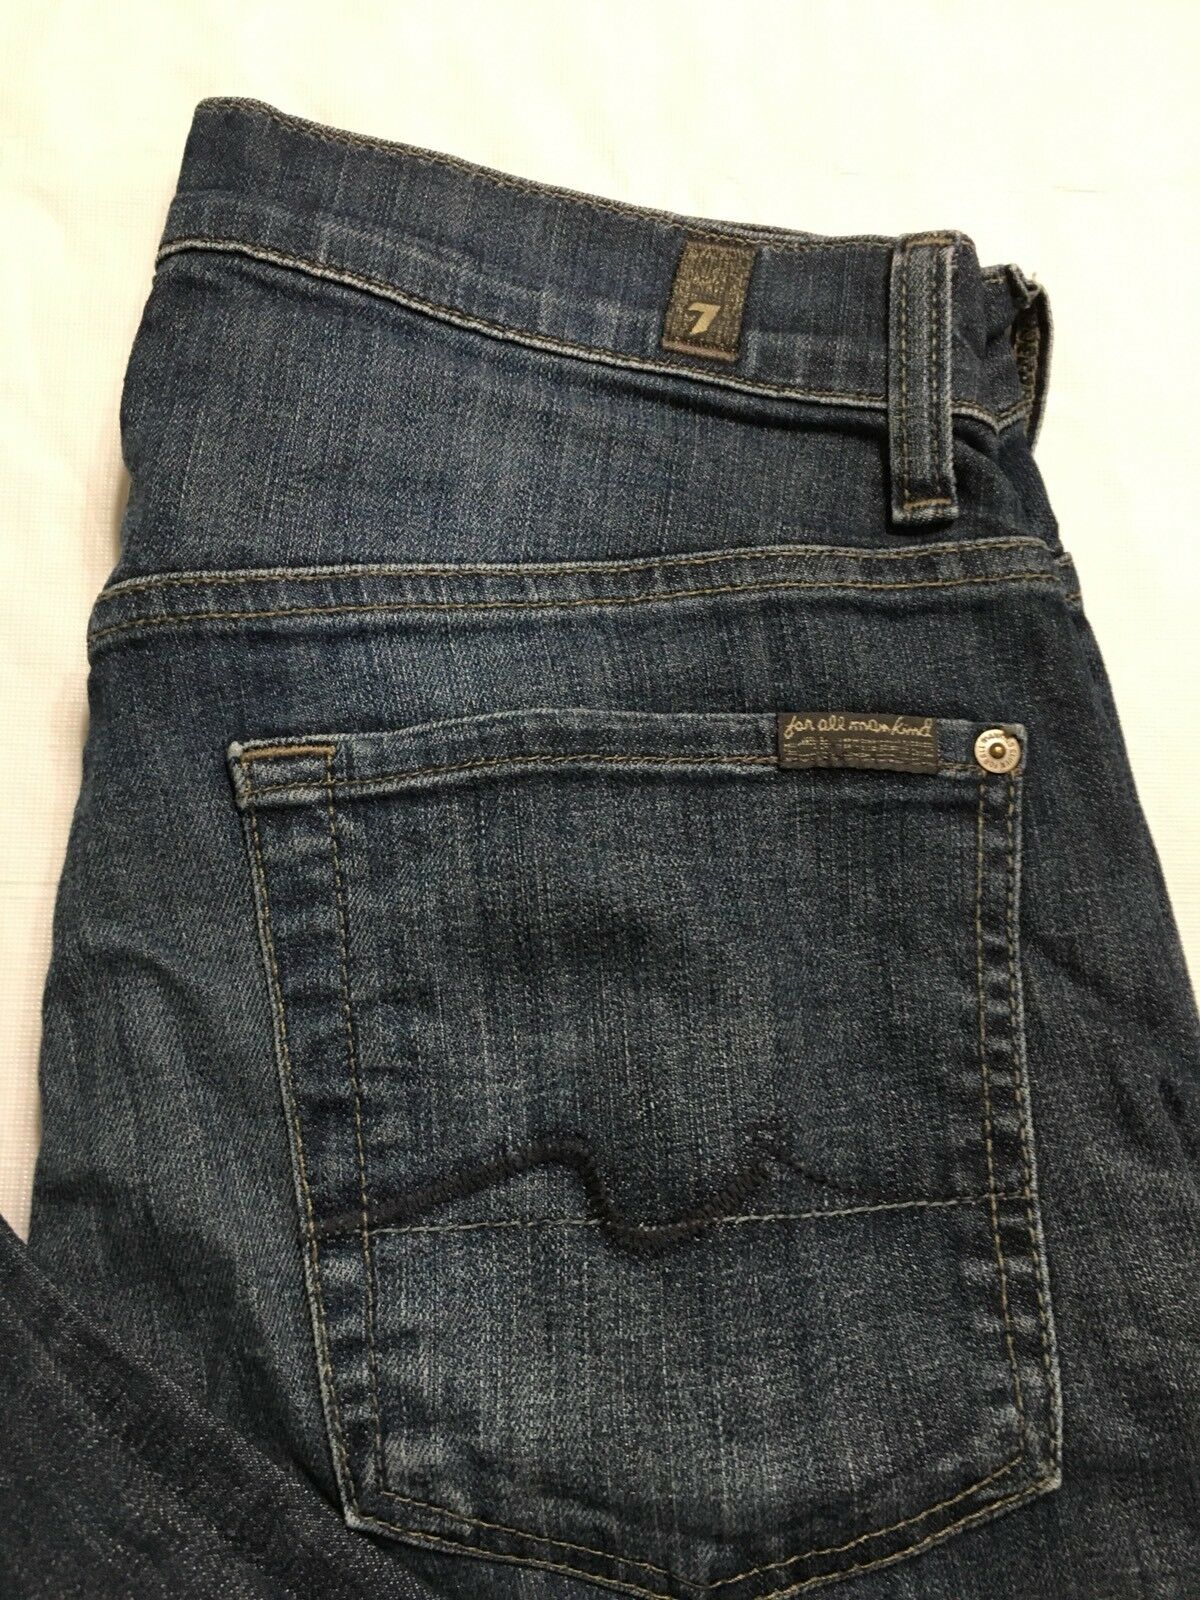 7 Seven For All Mankind Size 28 Austyn Jeans Womens Bootcut Med Wash Distressed